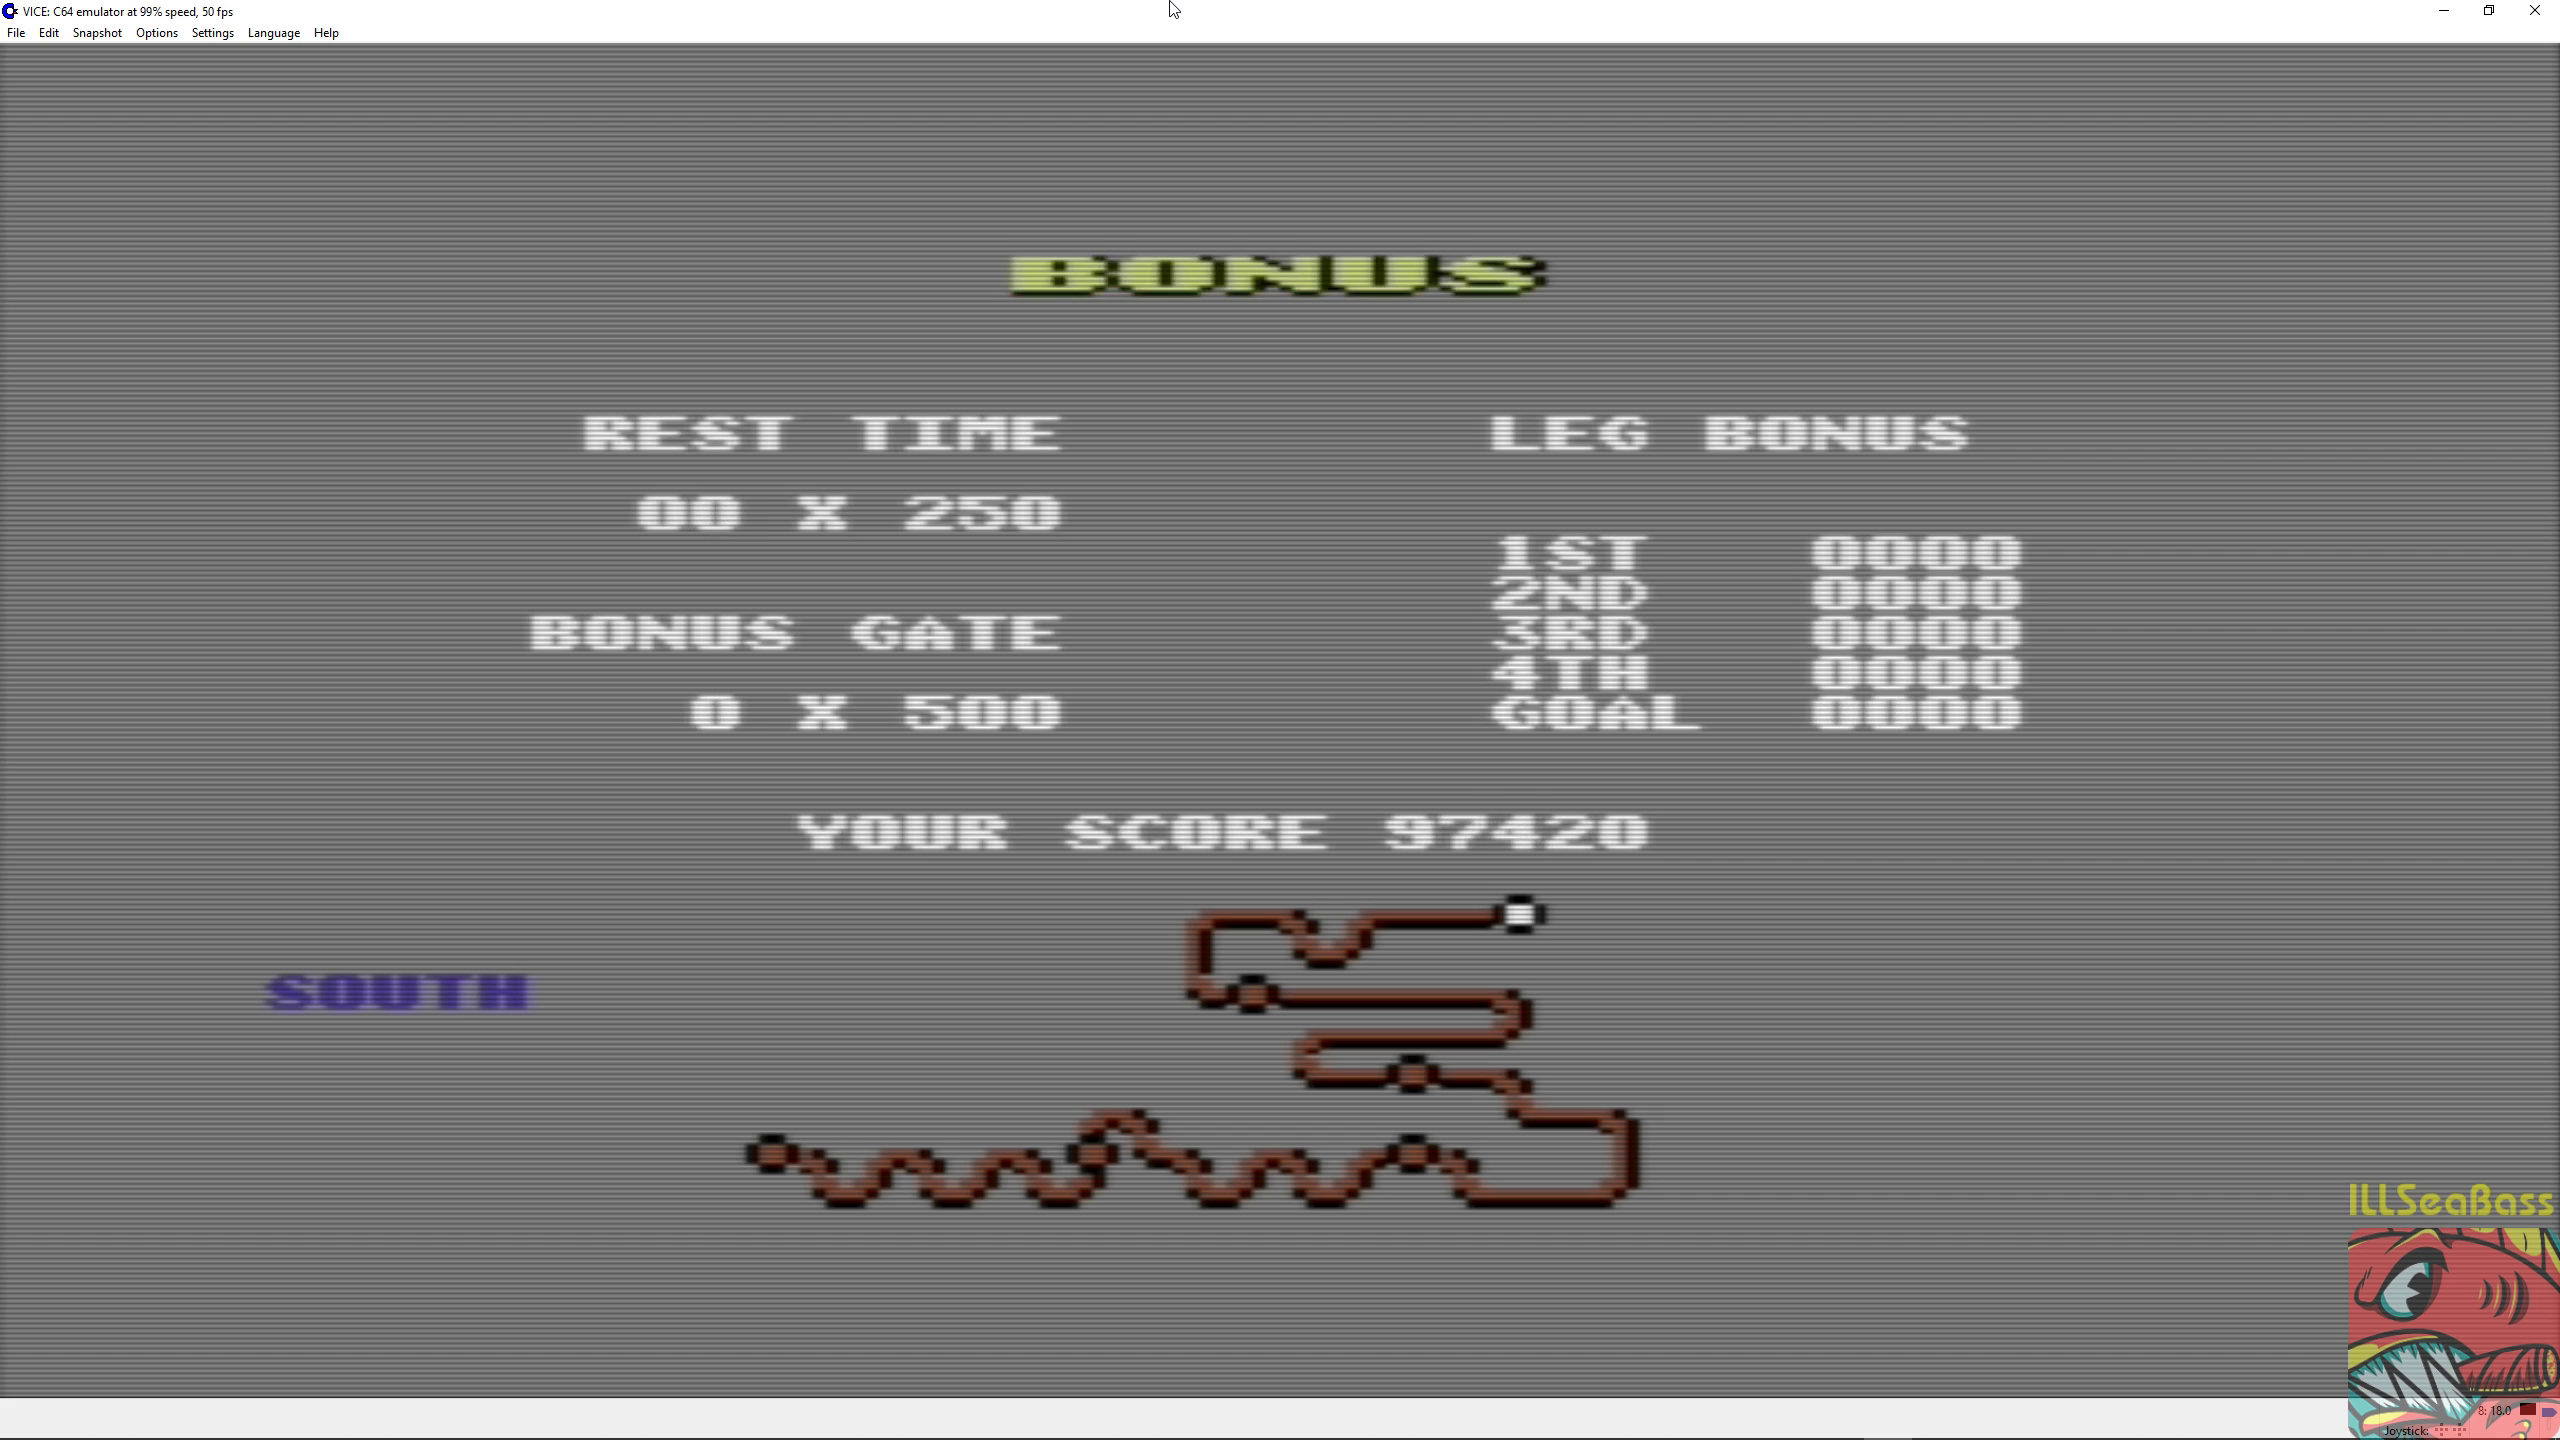 ILLSeaBass: Buggy Boy: South (Commodore 64 Emulated) 97,420 points on 2018-07-05 00:55:02